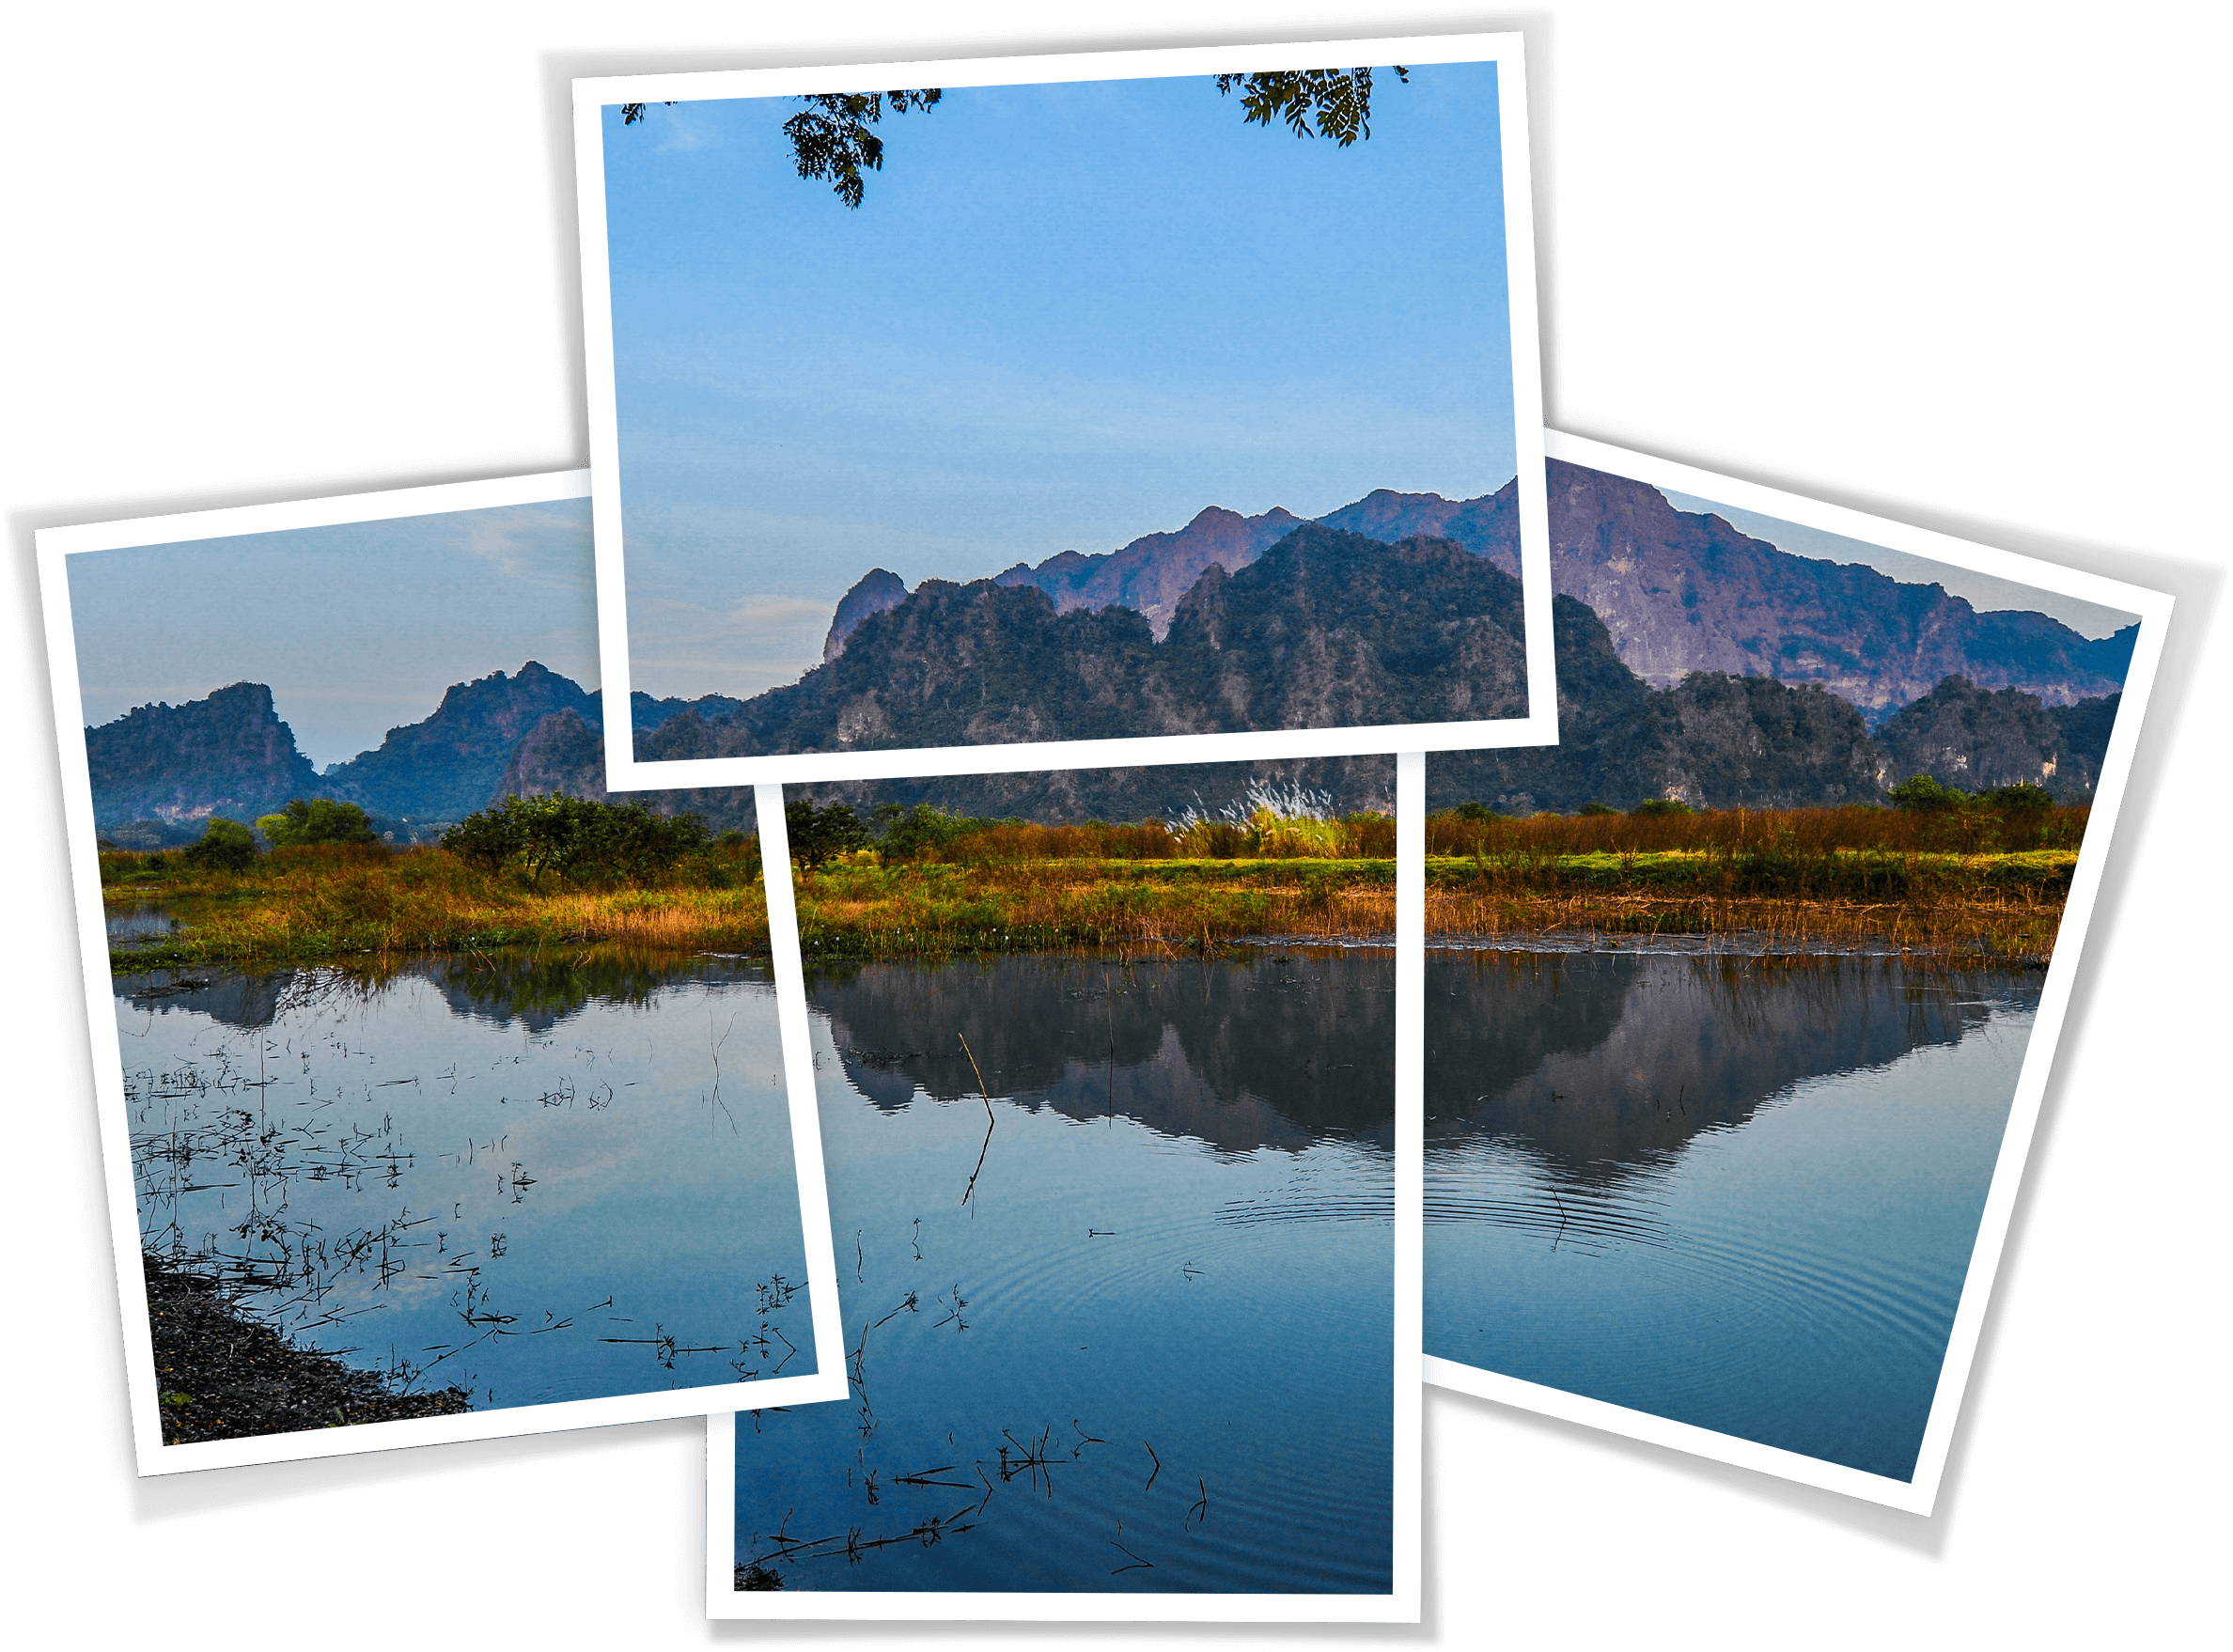 Hpa An